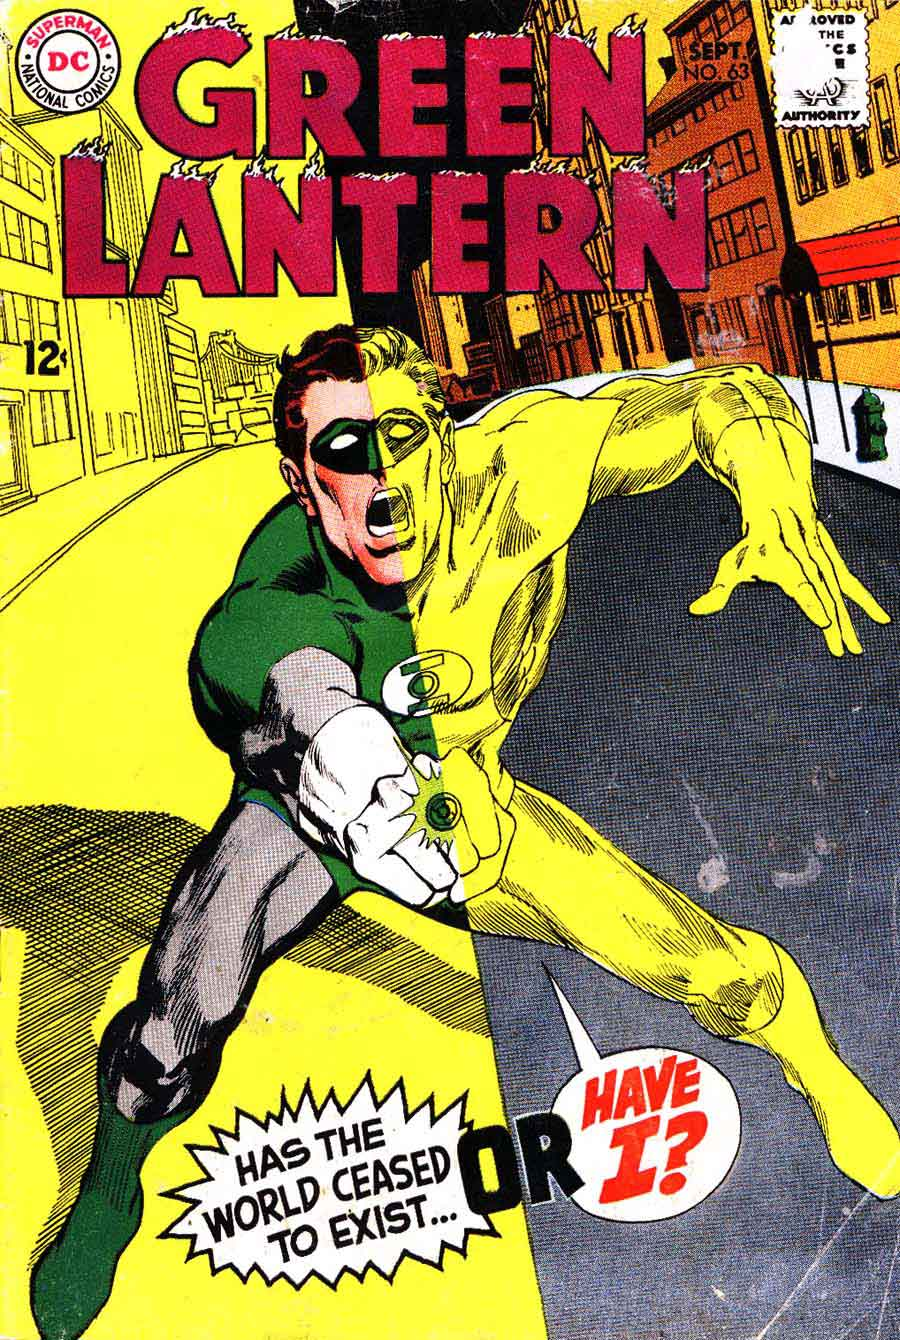 Green Lantern v2 #63 dc comic book cover art by Neal Adams